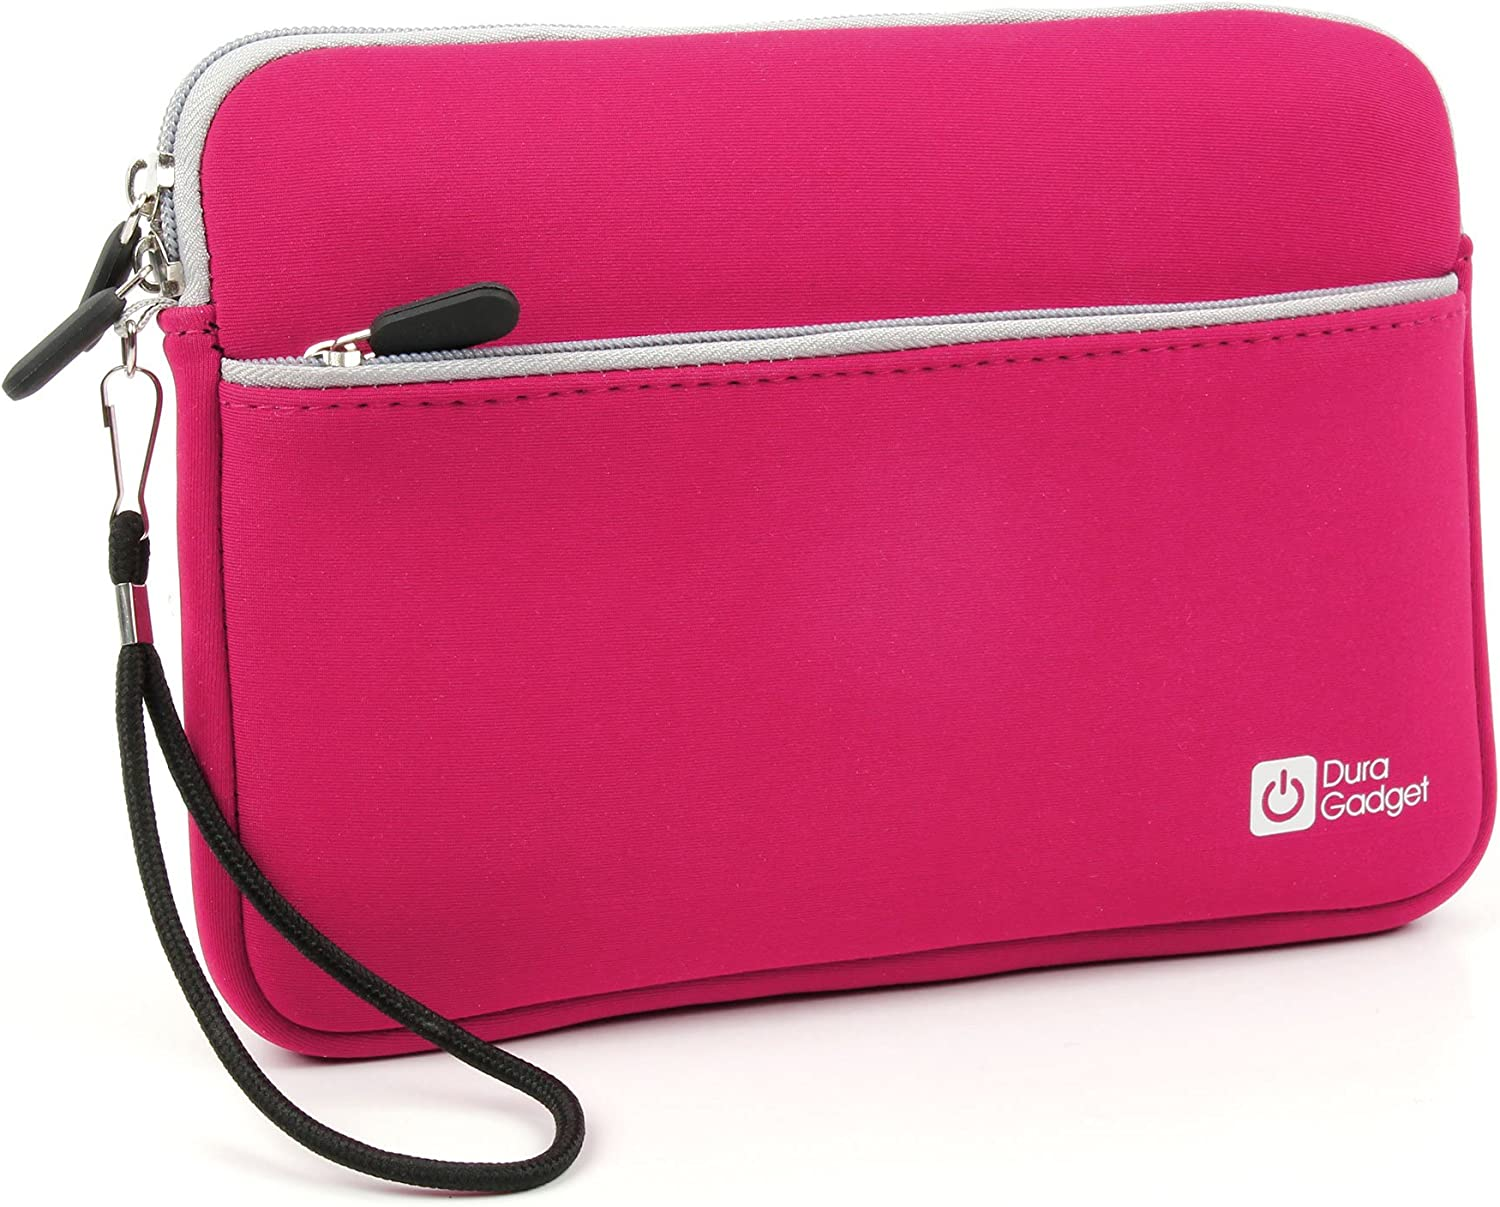 DURAGADGET Pink Neoprene Soft Cover - Compatible with Acer Iconia A700   A1-811-83891G01NW   A1-811   Iconia Tab A500 & A501 10.1 Inch Tablet